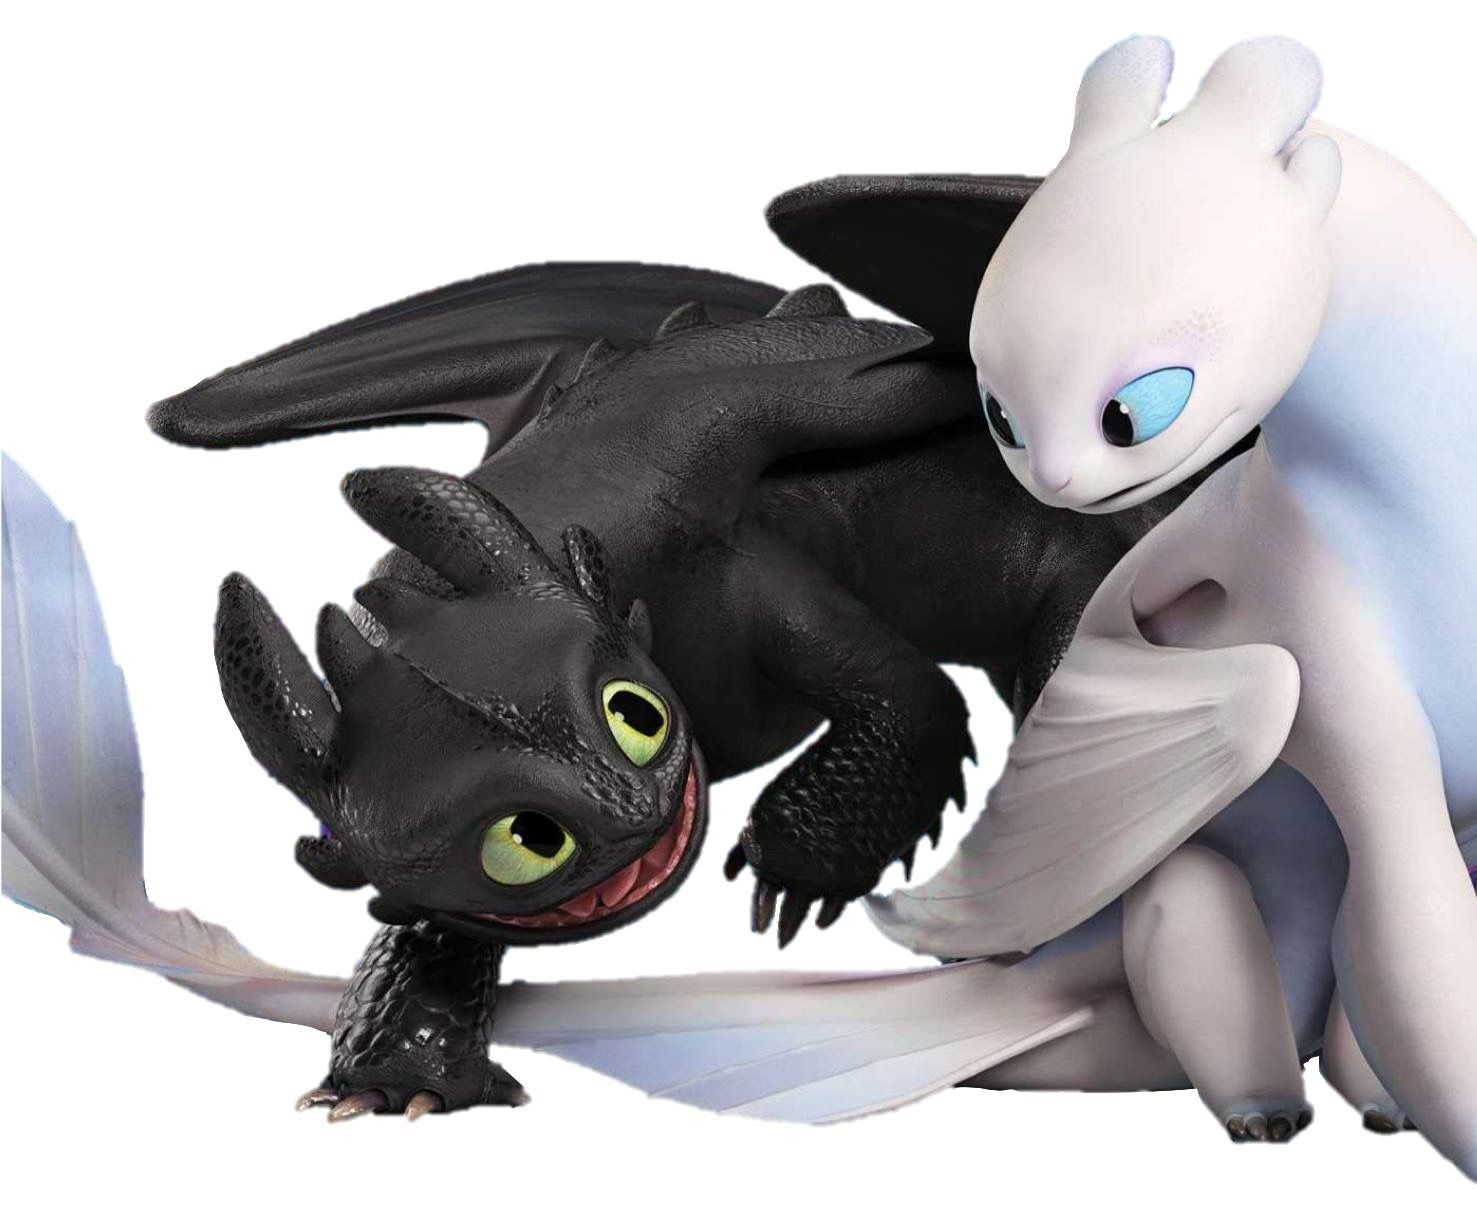 Remarkable, rather how to train your dragon toothless porn pity